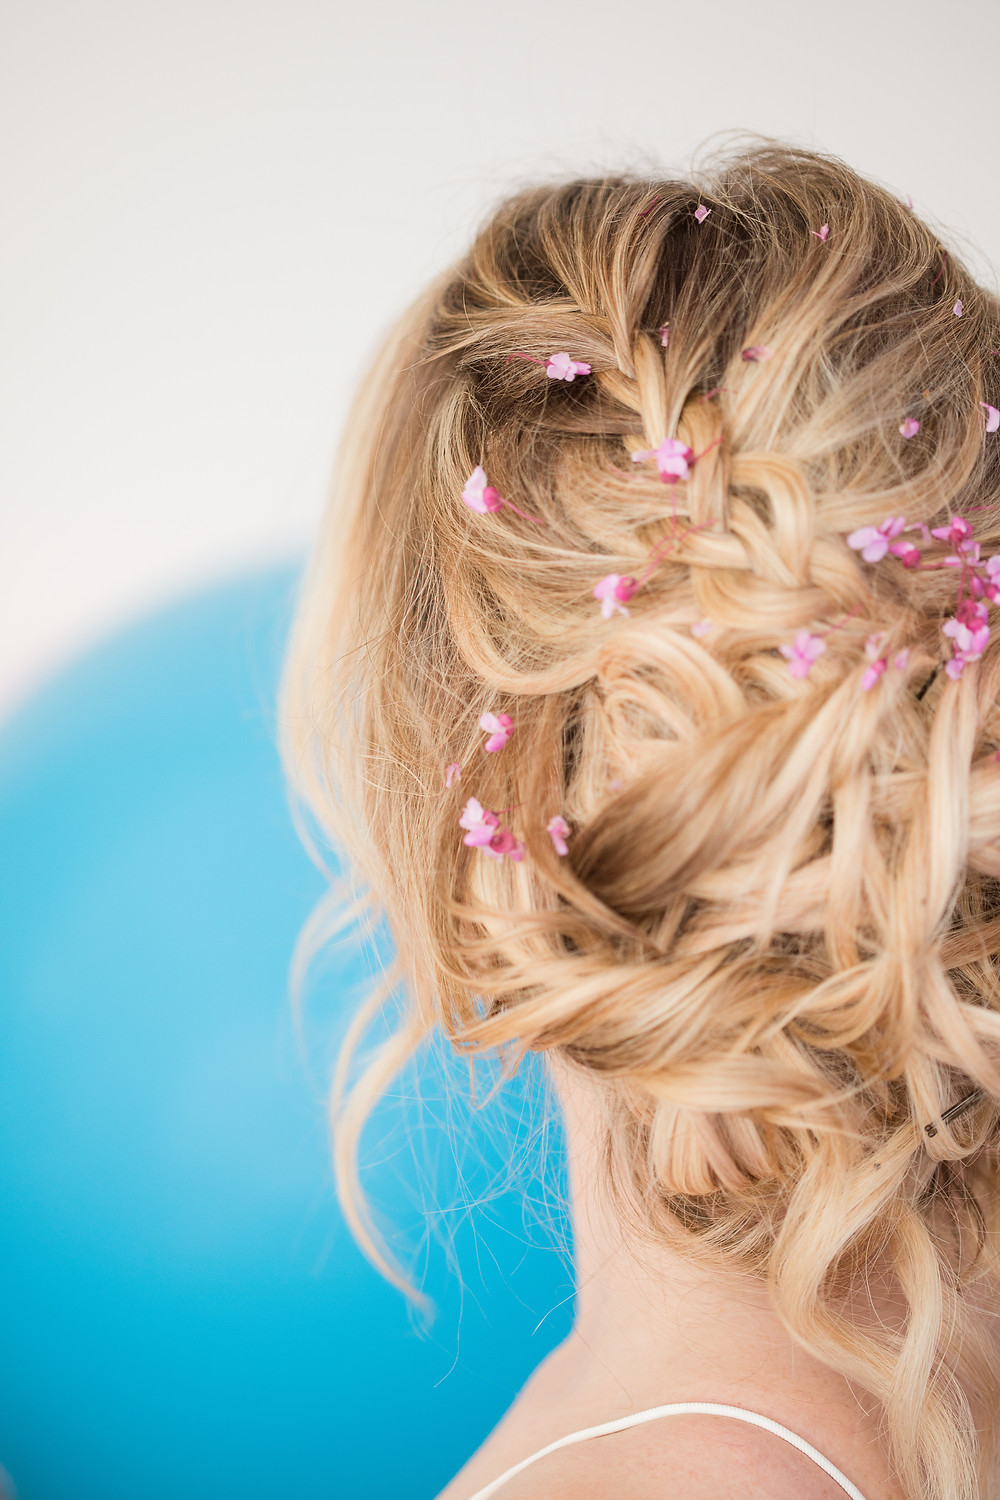 Tiny flowers sit atop a bridal braided wedding updo